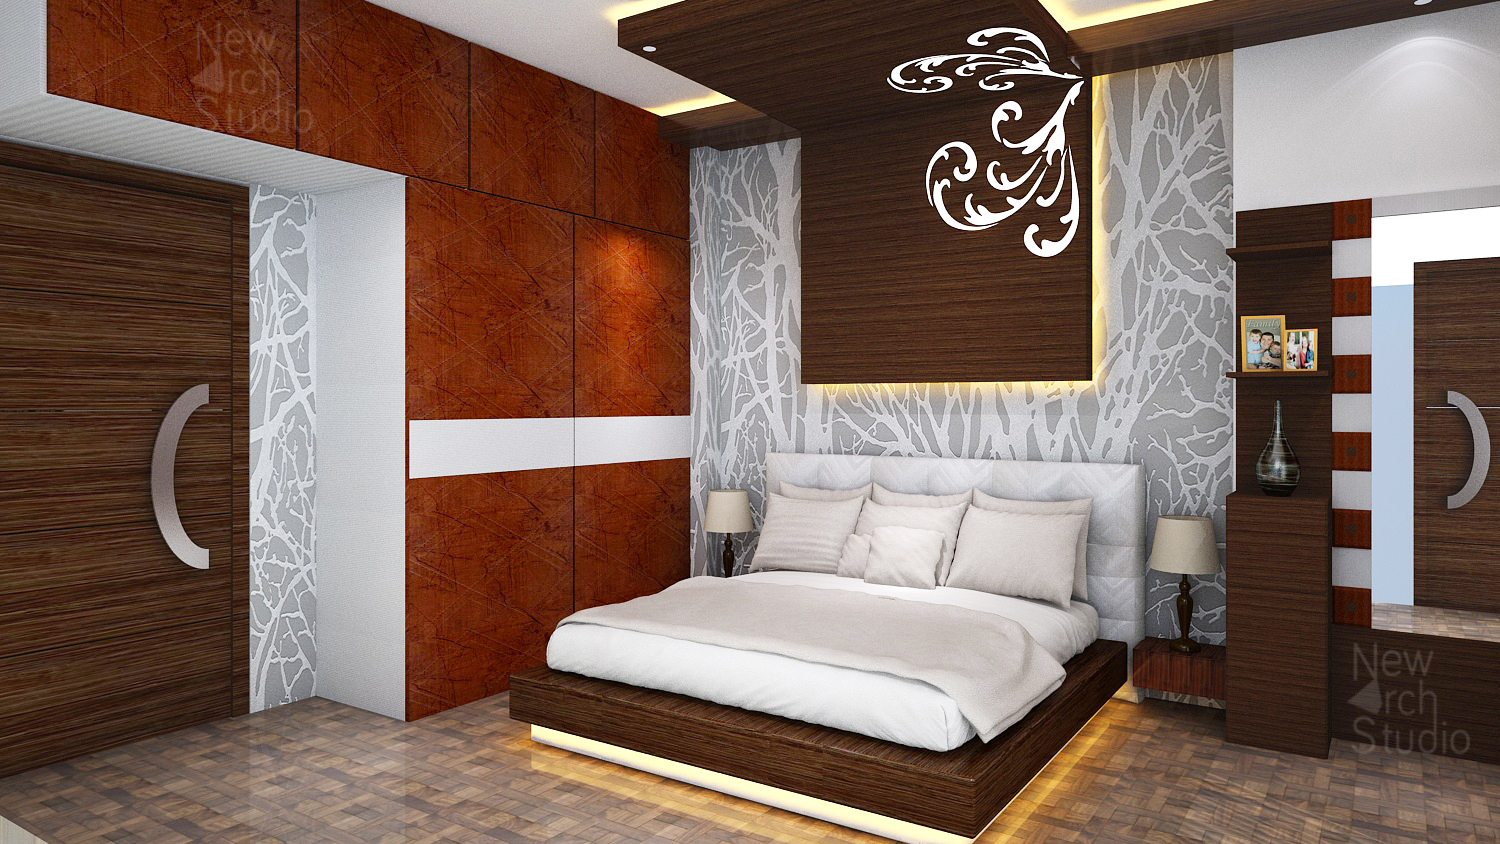 Master bedroom interior design for residence done by new arch studio